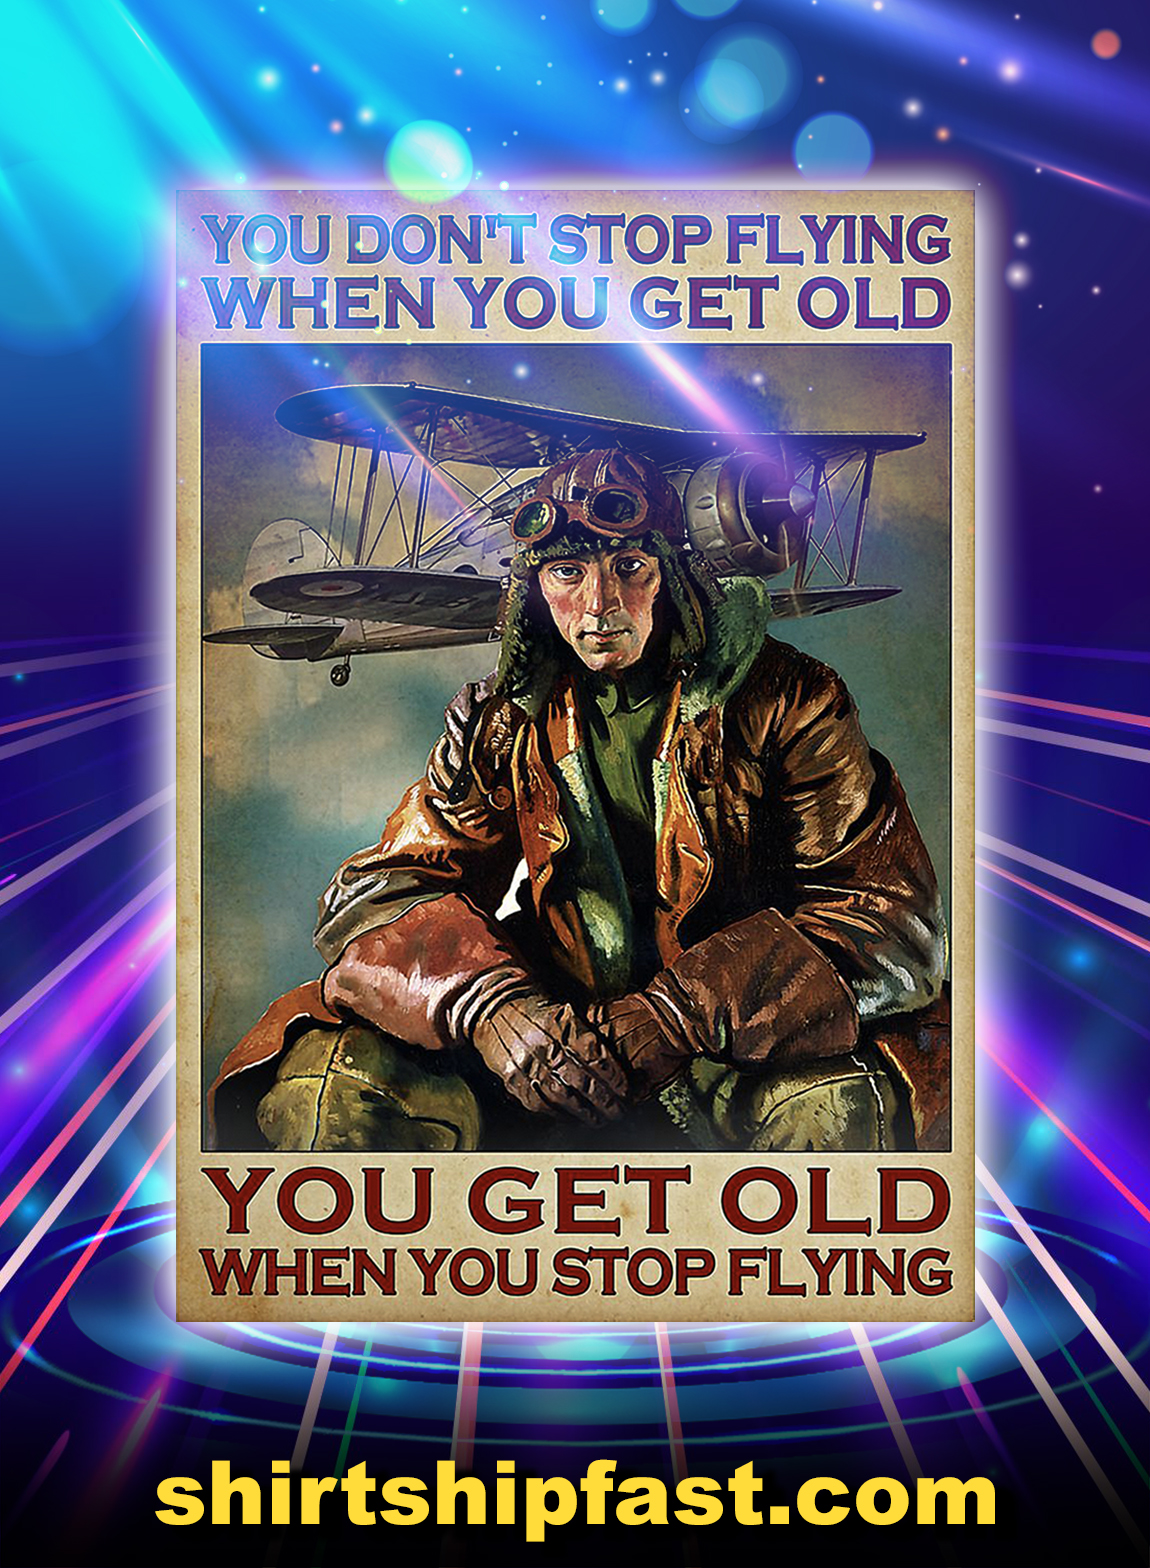 PILOT you don't stop flying when you get old poster - A2